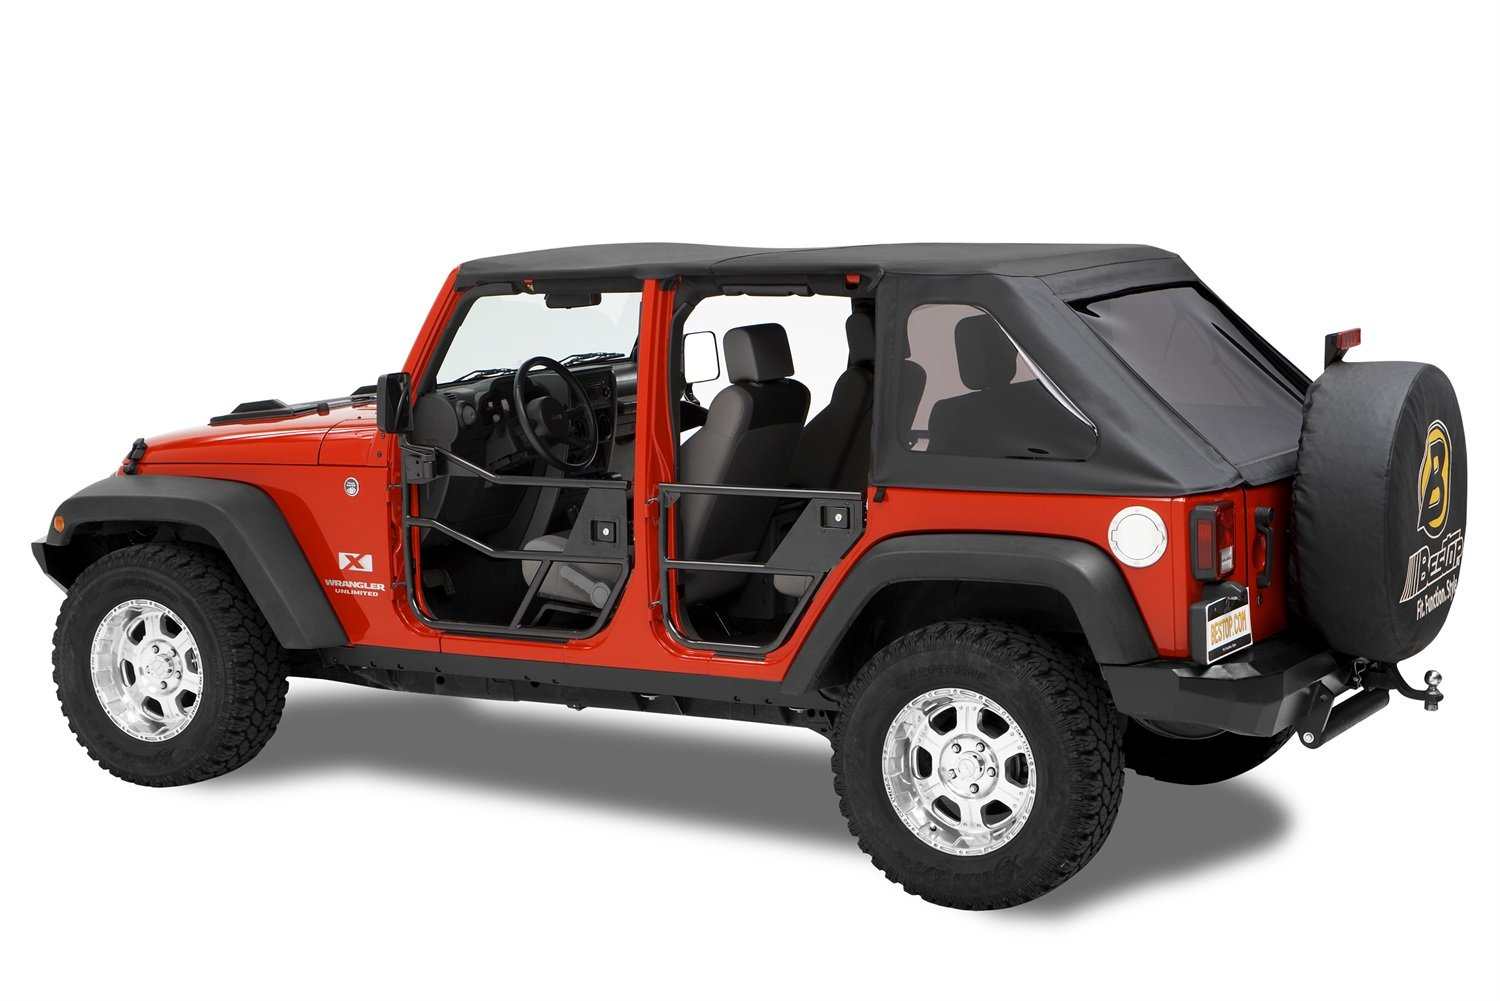 Amazon.com: Bestop 51810-01 Black HighRock 4X4 Element Door Set for Wrangler JK including Unlimited - Front doors: Automotive